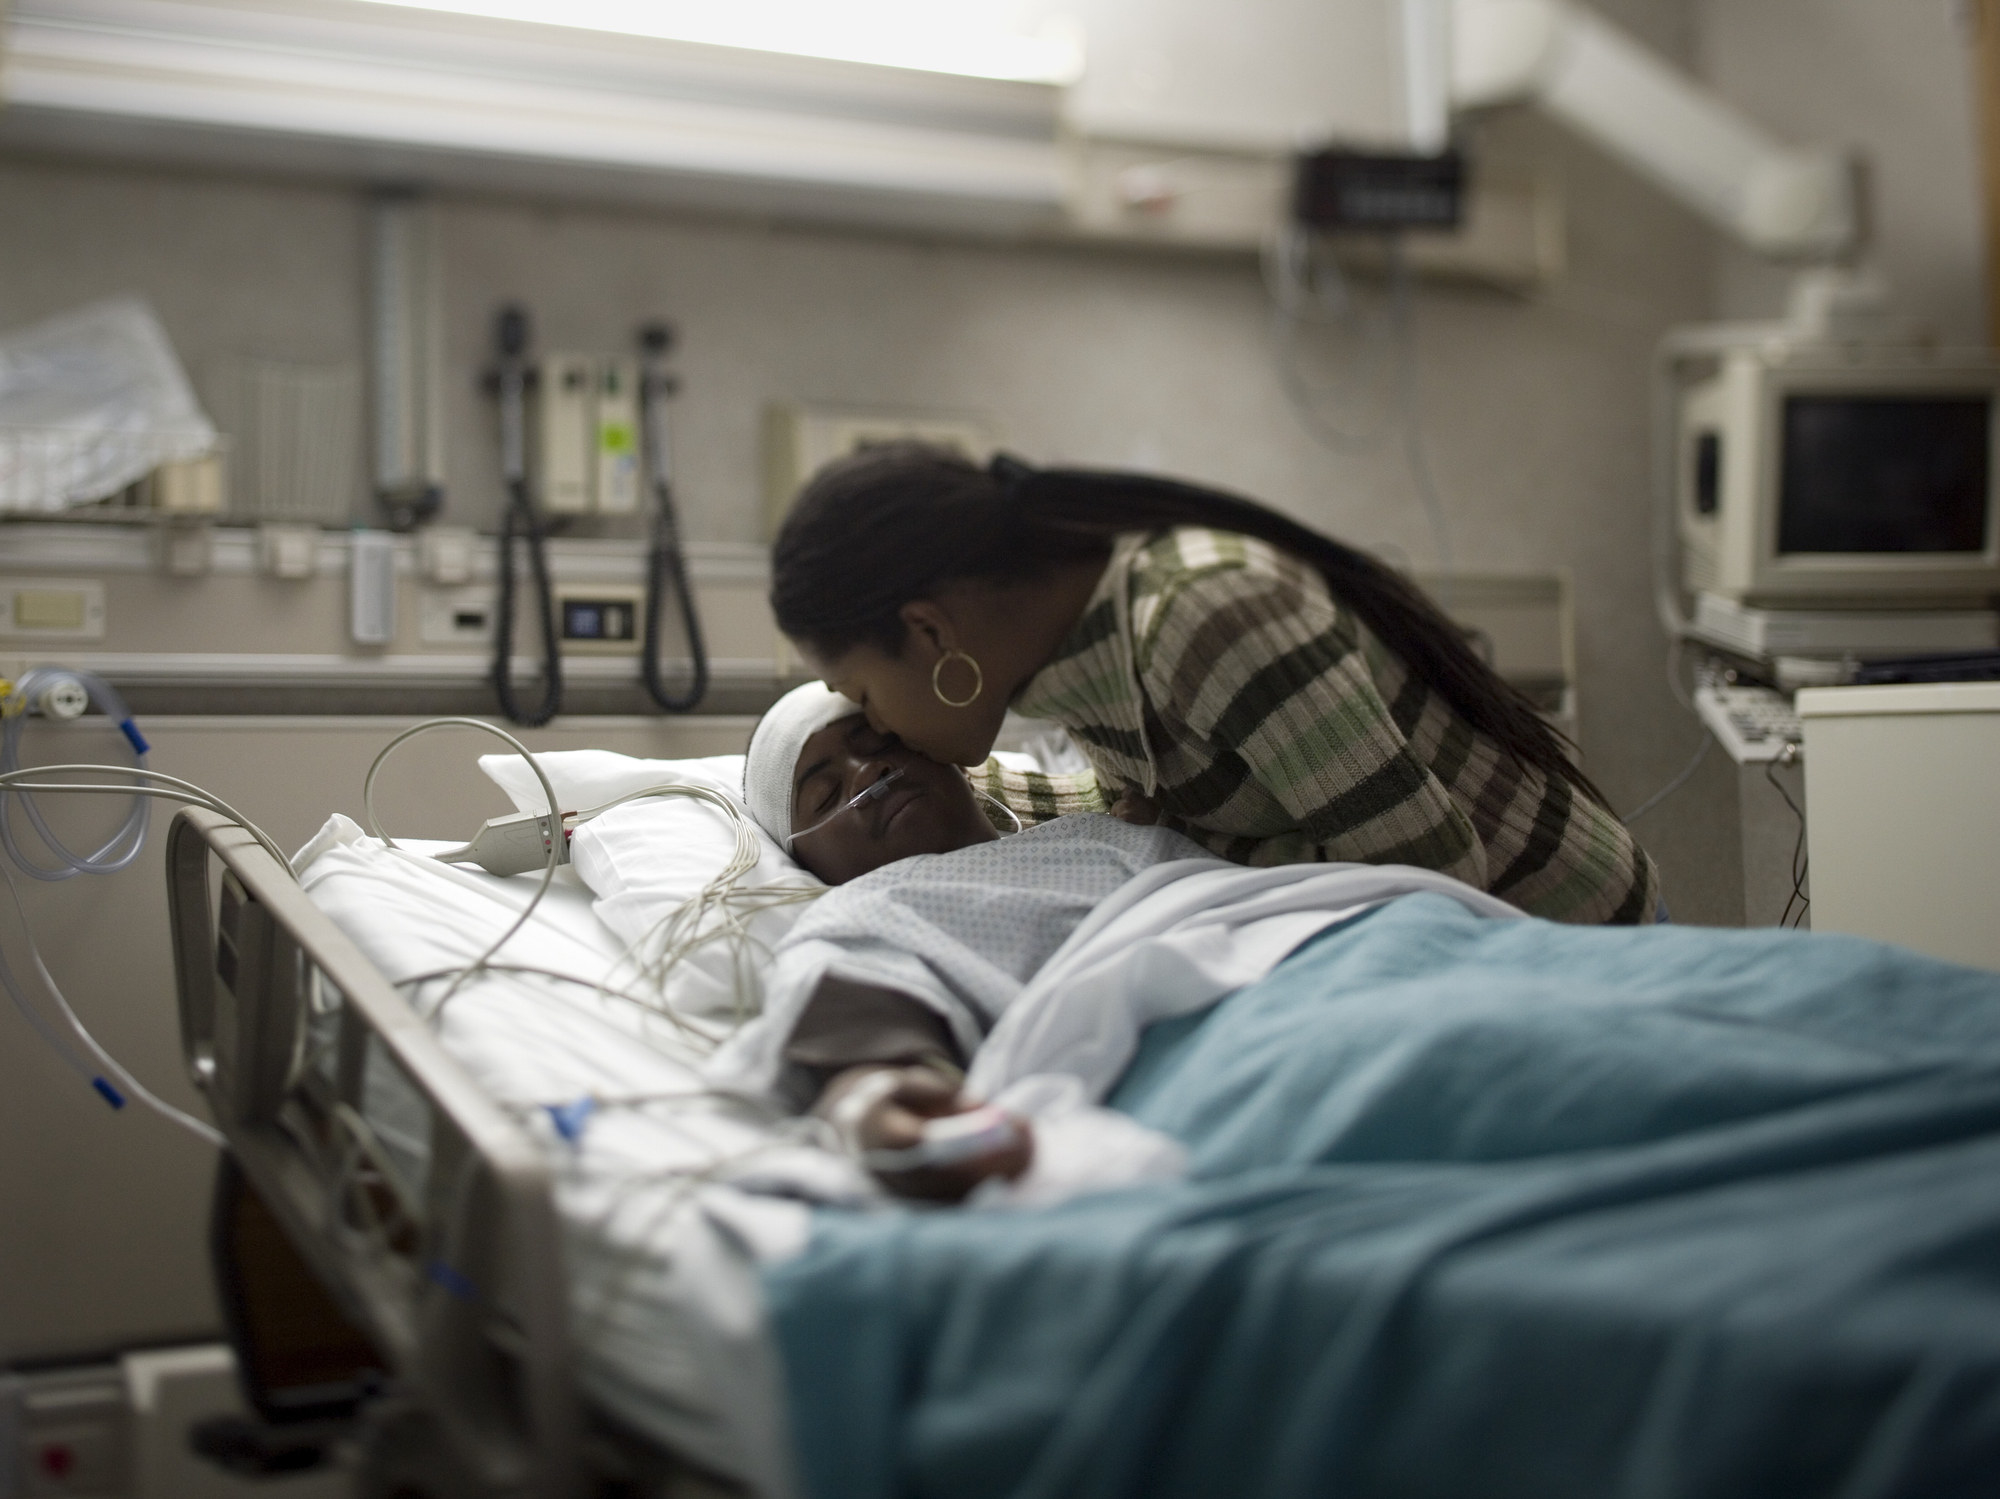 A woman kissing a young man in a hospital bed